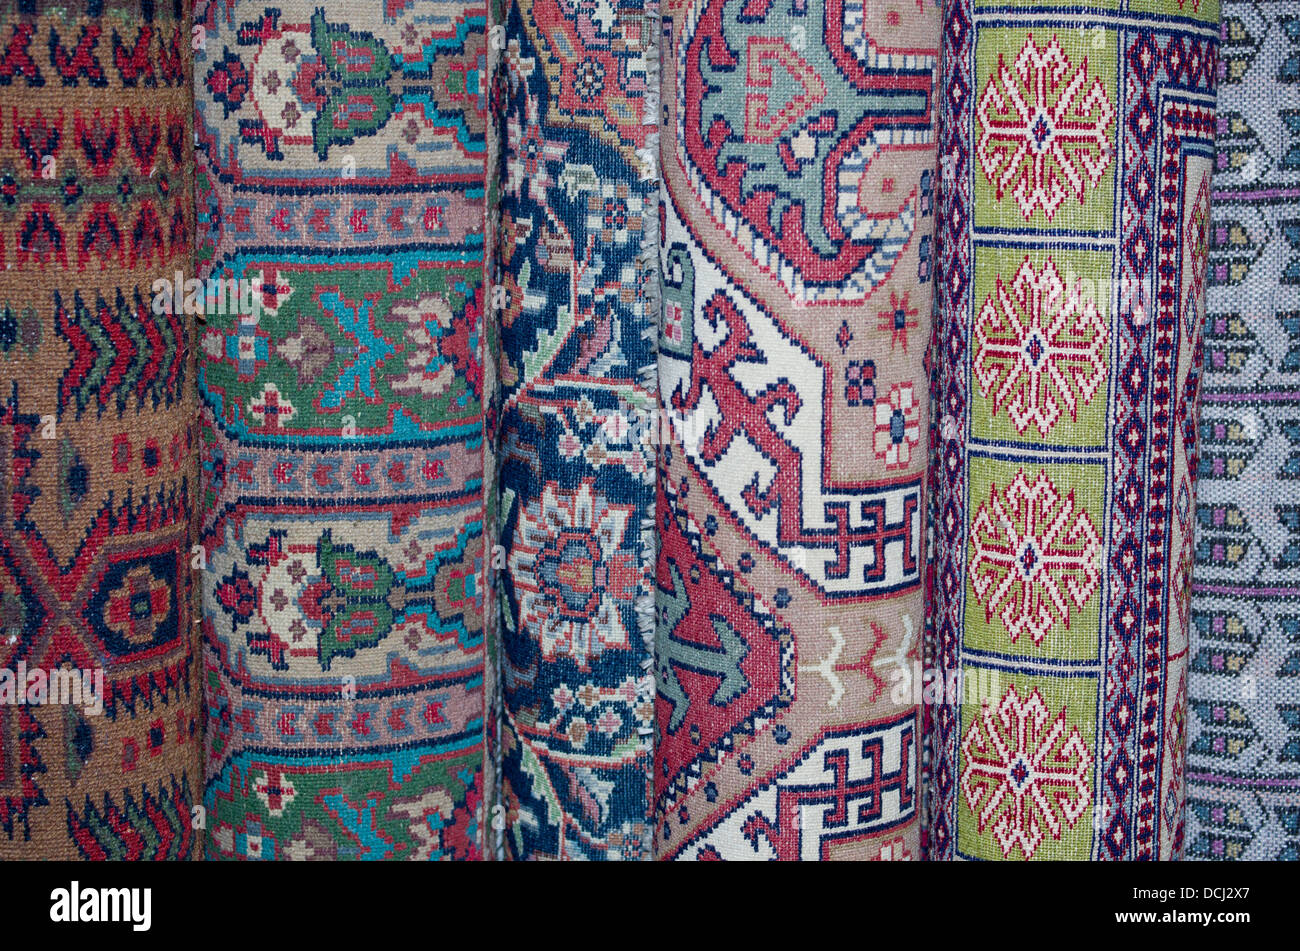 Traditional Indian wool carpets for sale - Agra, India - Stock Image